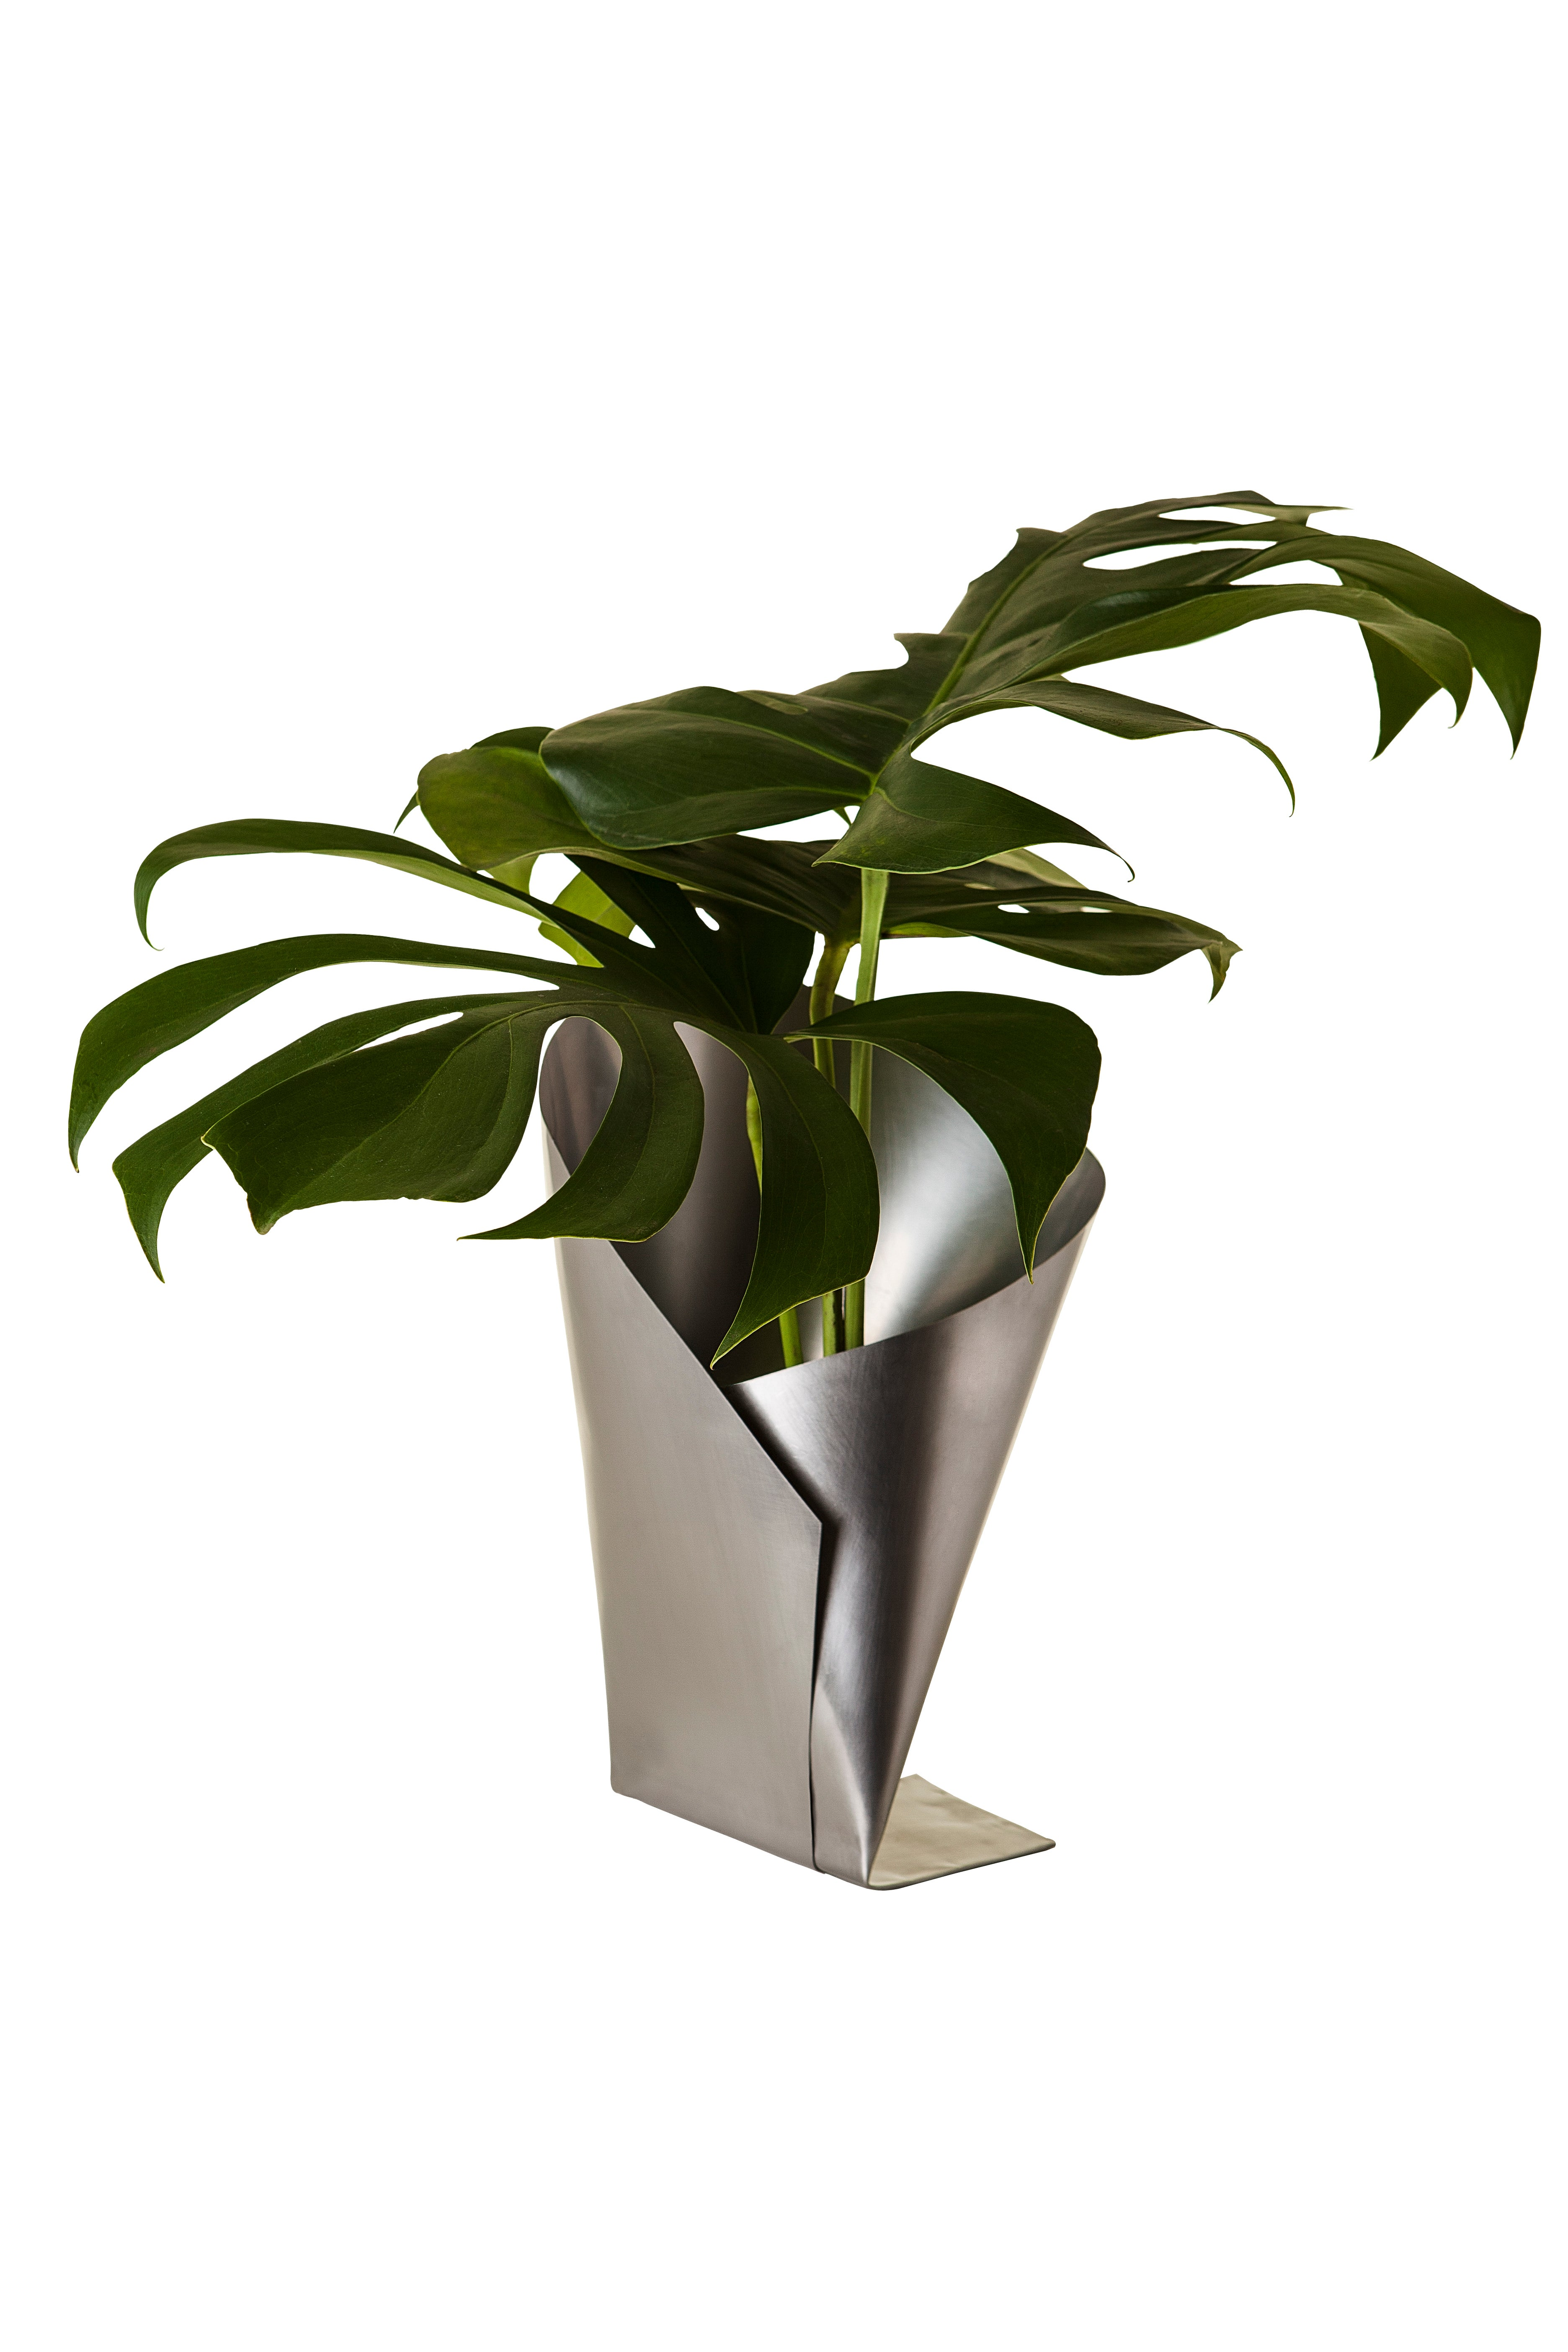 Origami Vase in Stainless Steel, Contemporary Brazilian Style ...